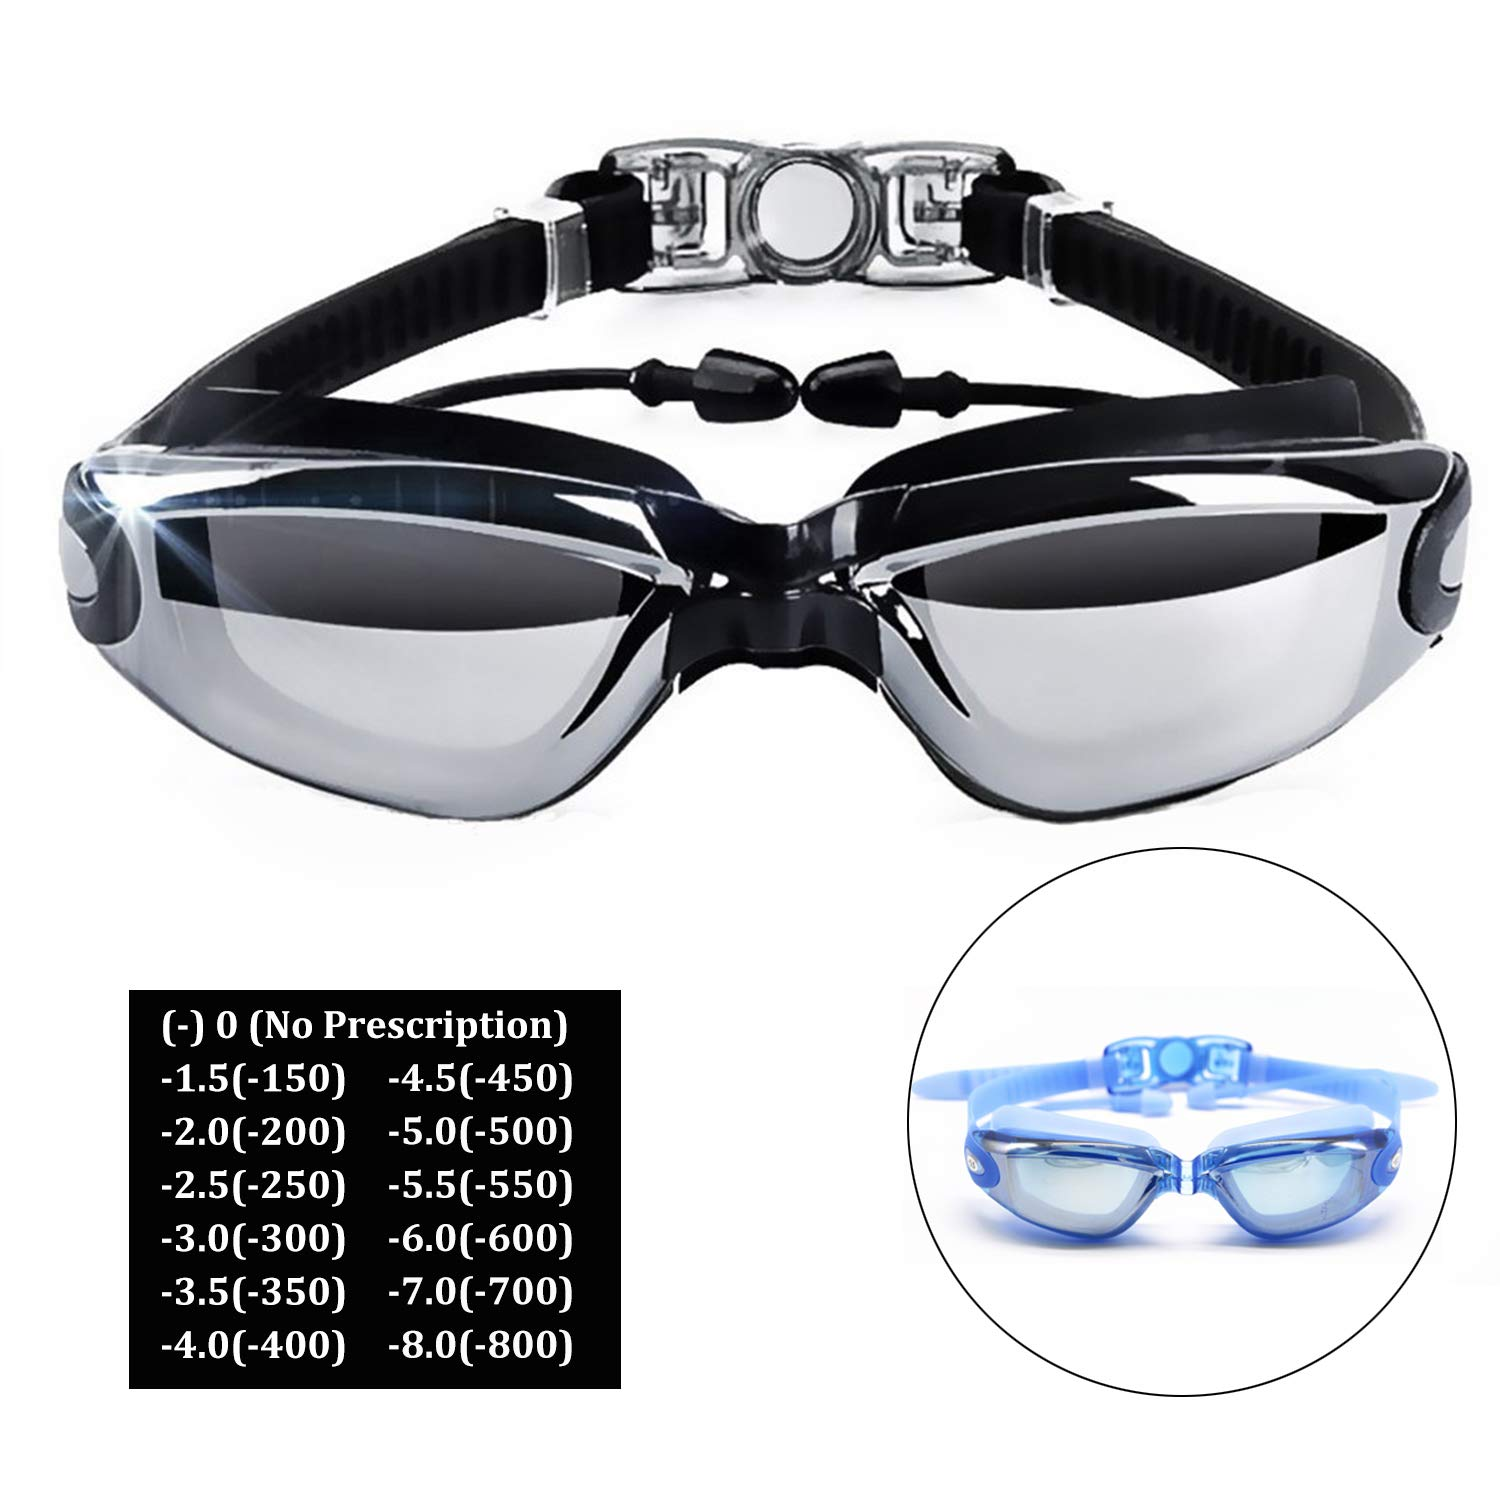 302662c7889 Hersvin Nearsighted Swimming Goggles (0 to -800)